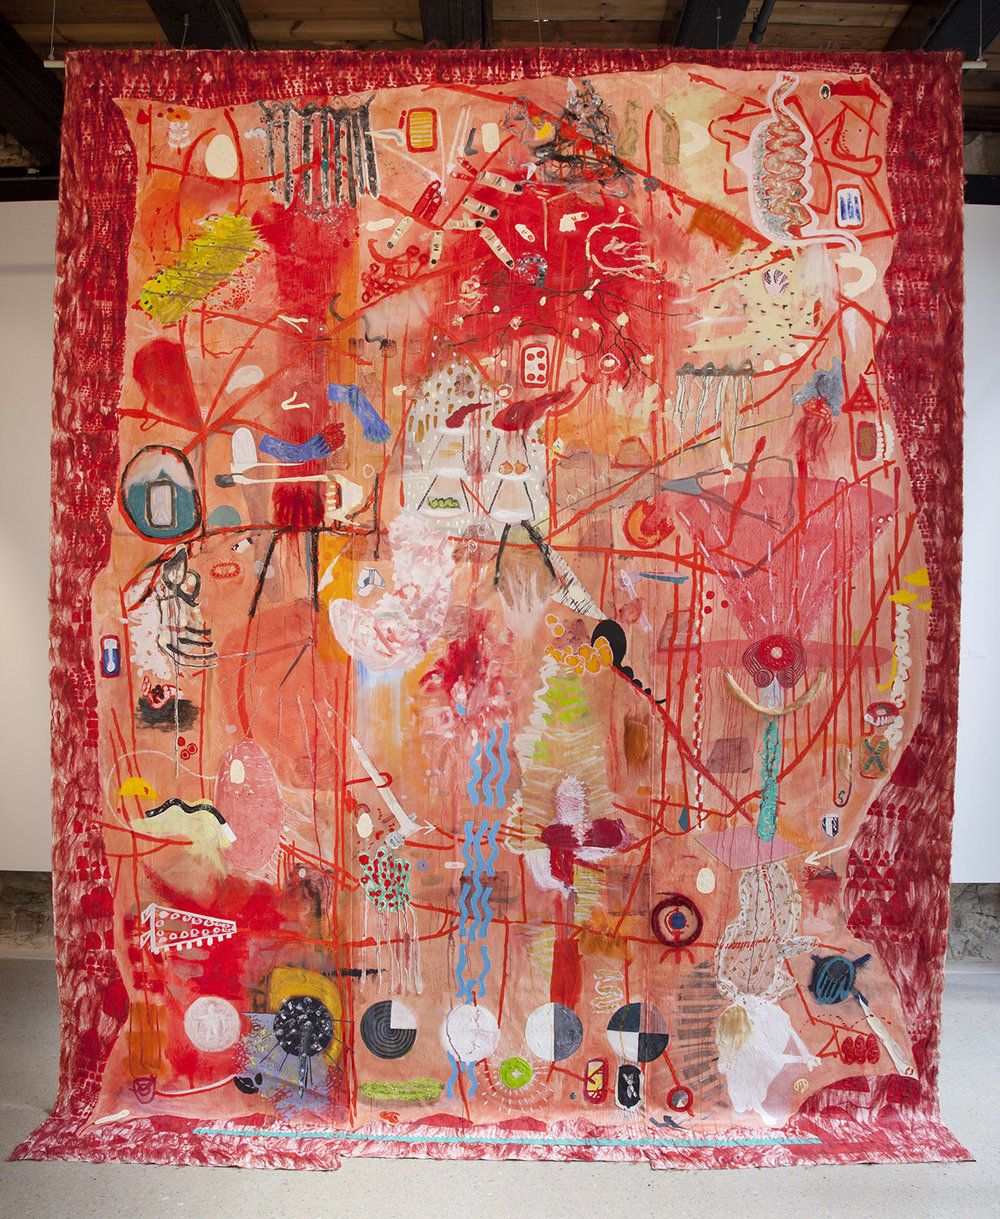 Skein (2), 2015, Oil on canvas, 350cm x 270cm, R39,000_1500.jpg